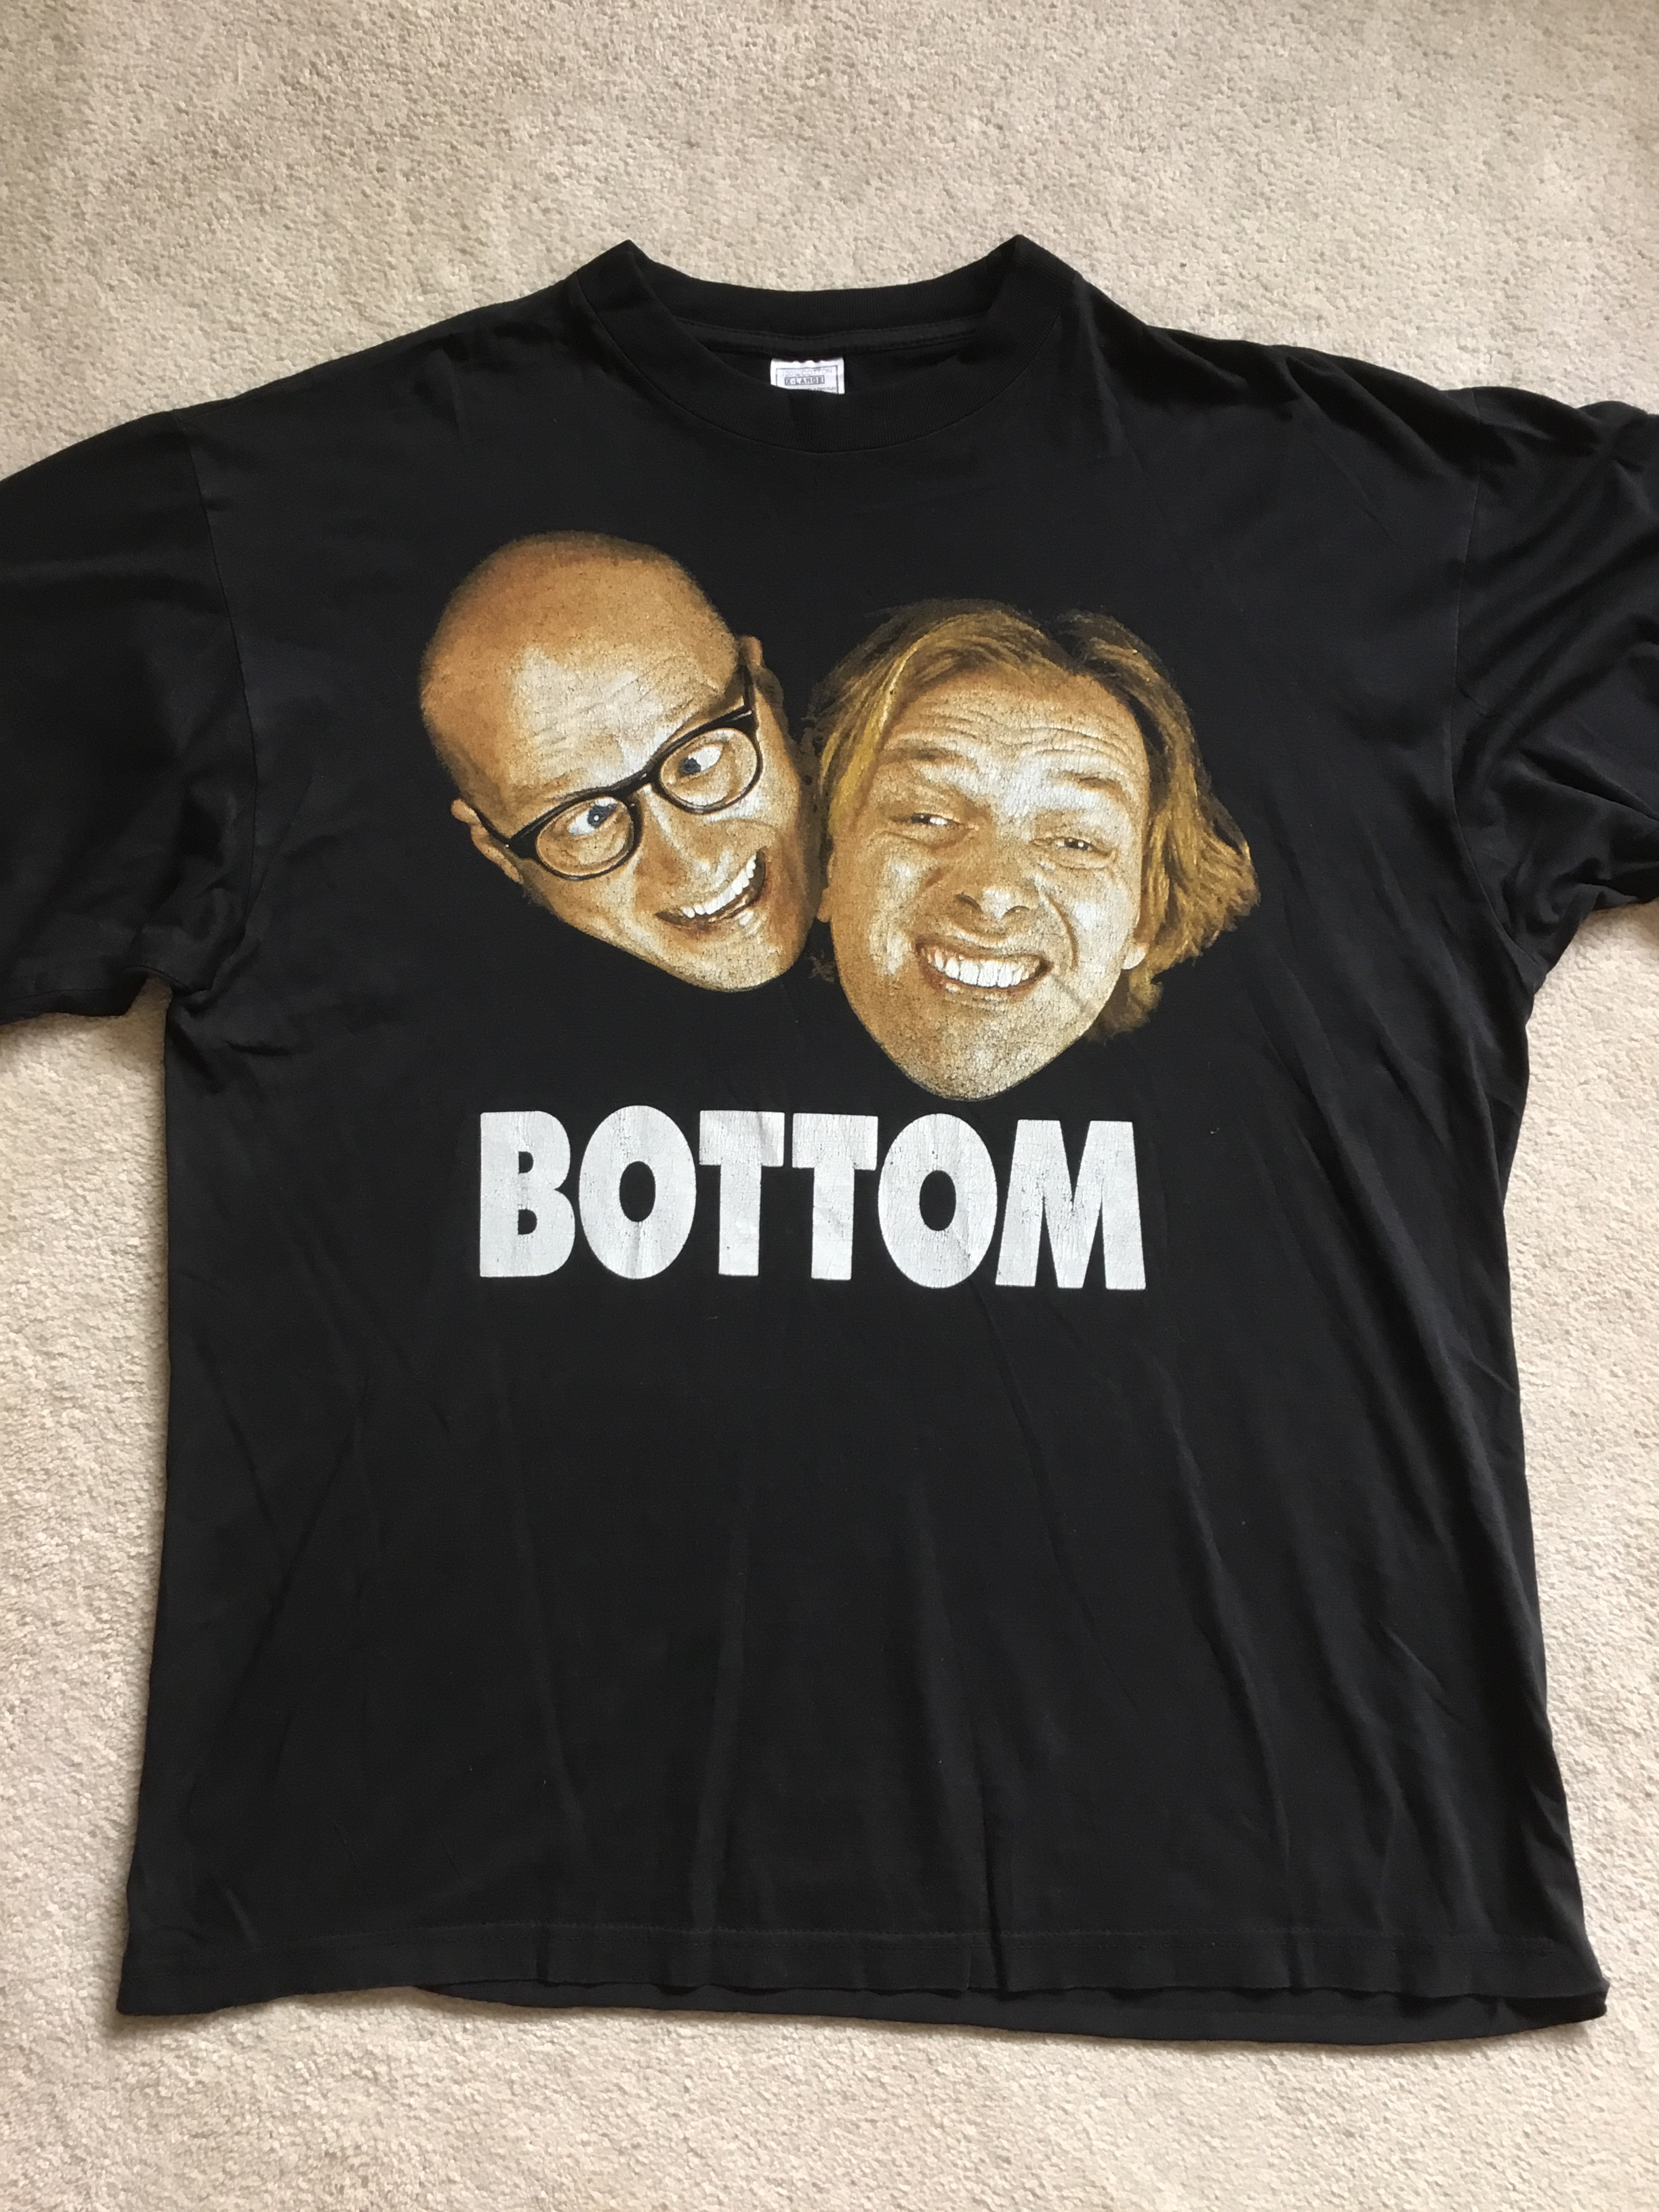 T-Shirts, Vintage 90's Bottom.